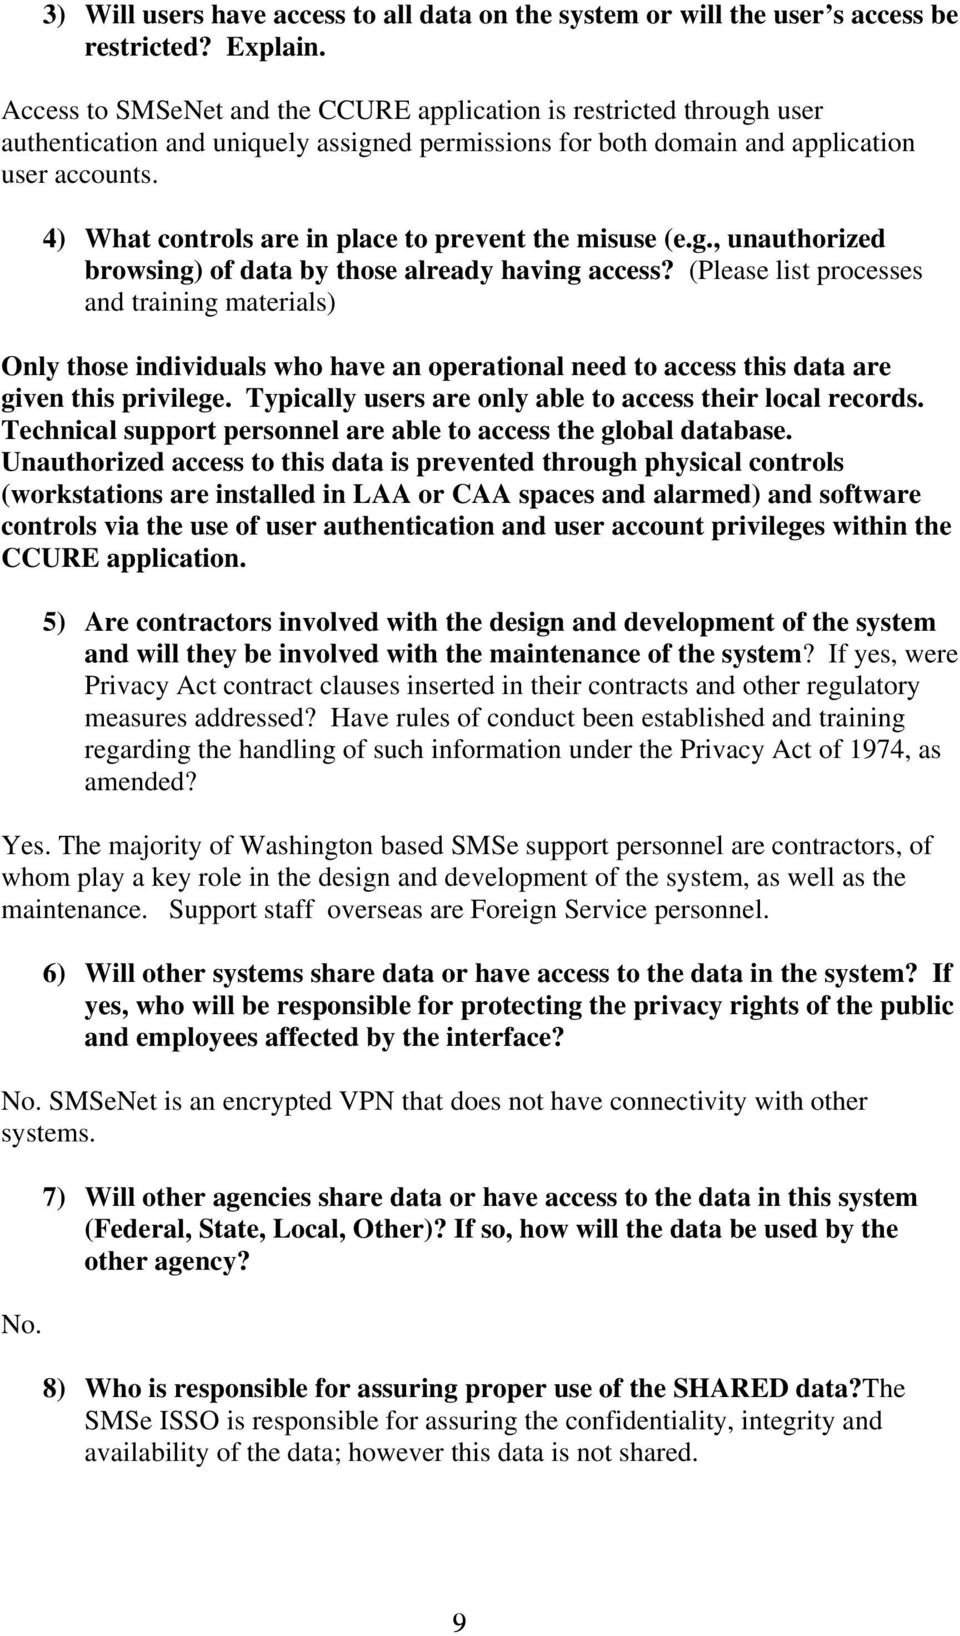 4) What controls are in place to prevent the misuse (e.g., unauthorized browsing) of data by those already having access?